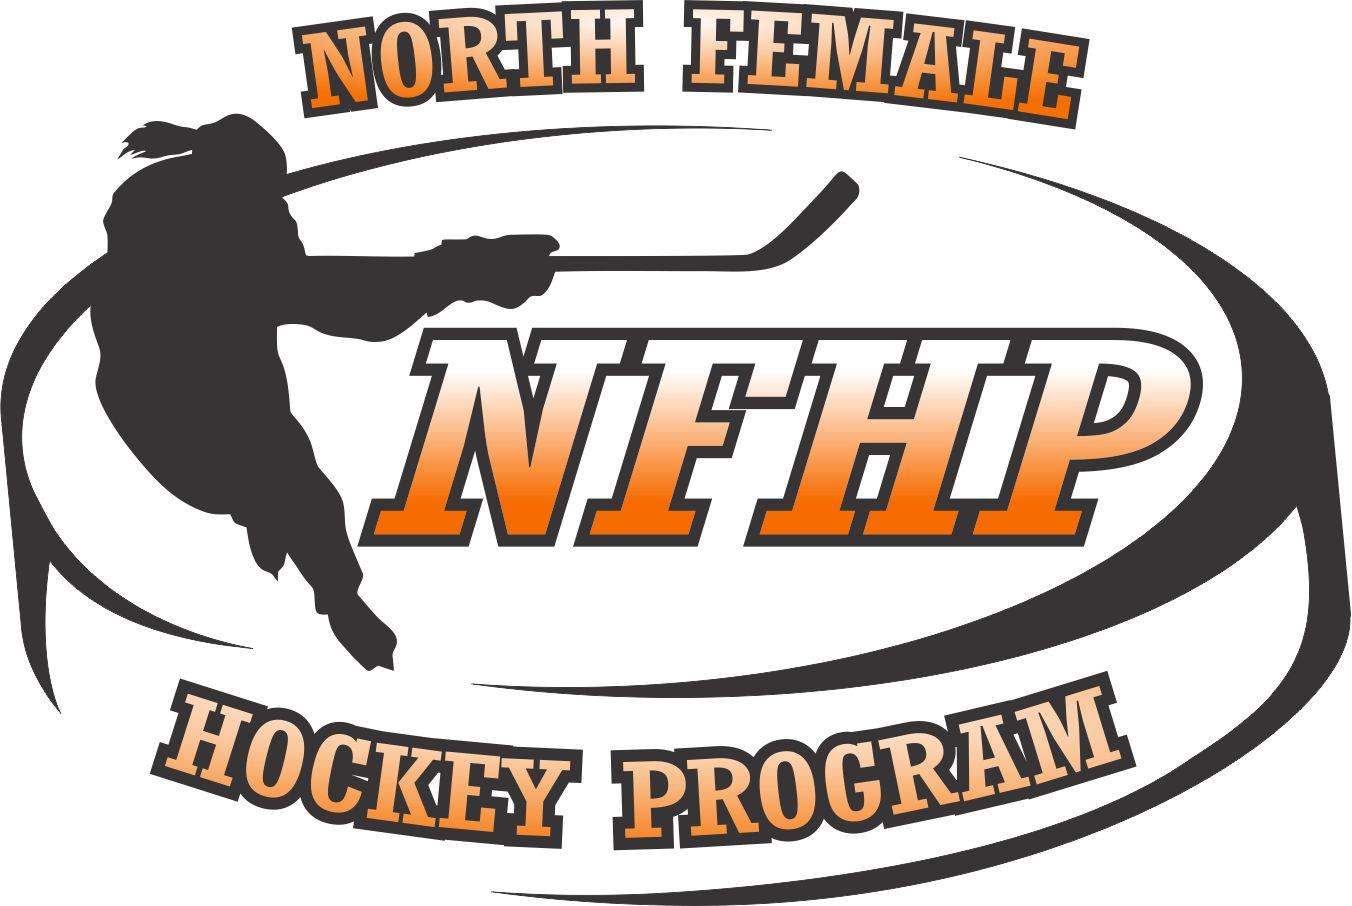 North Female Hockey Program